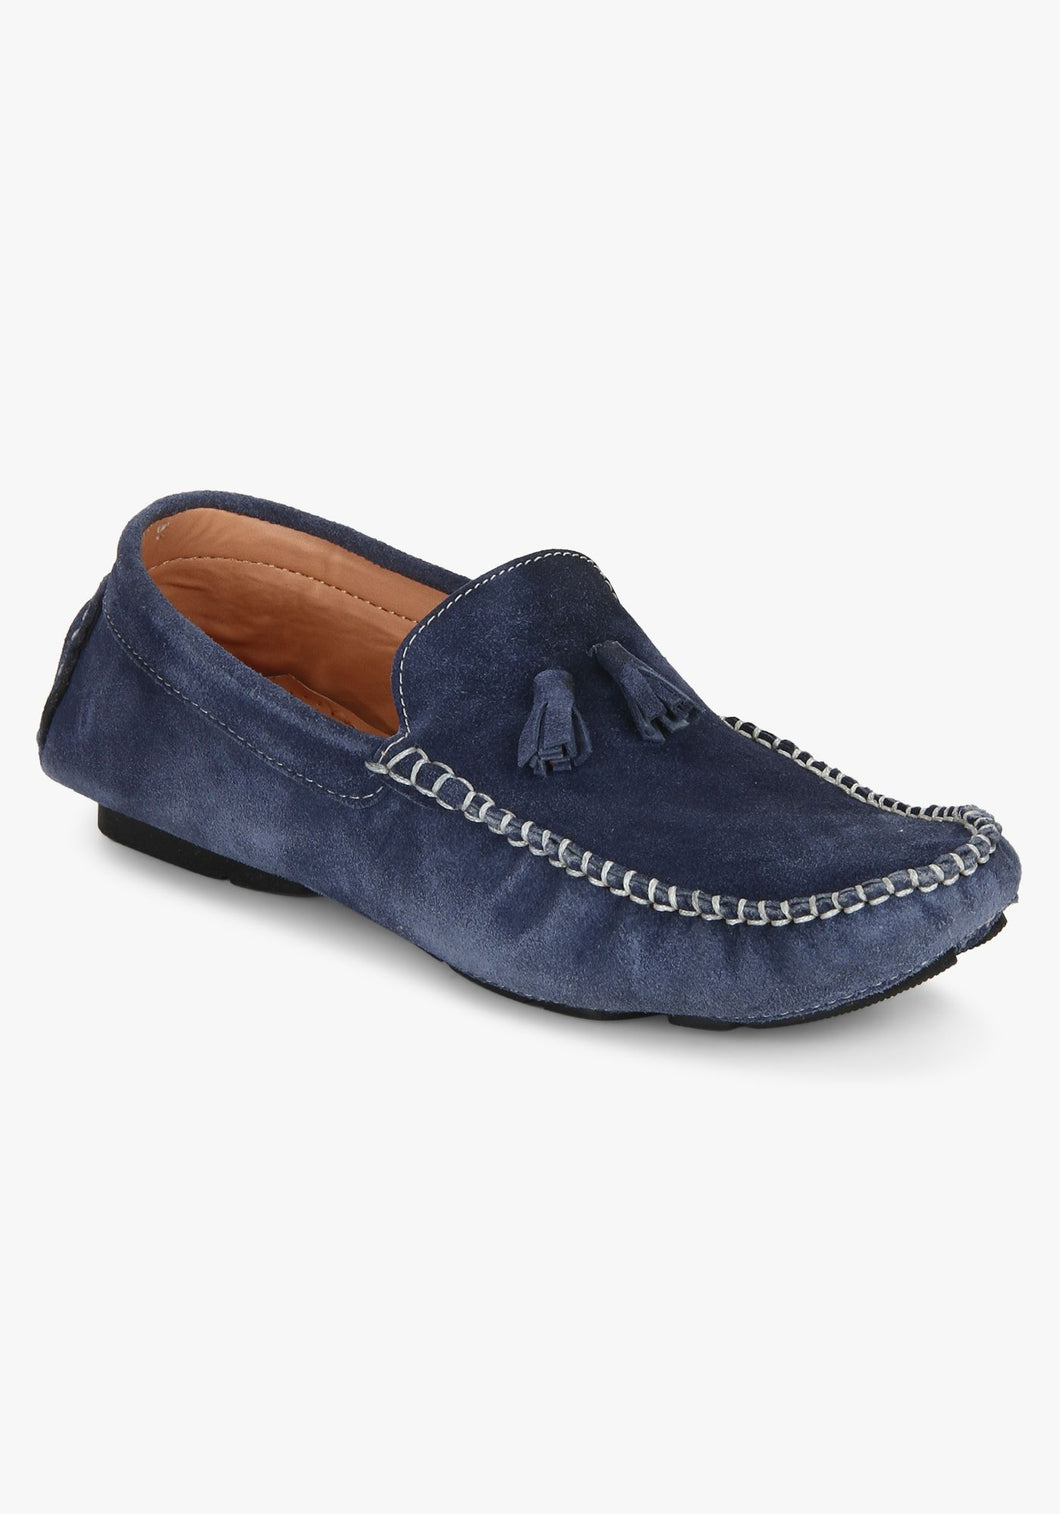 Men's Blue Casual Loafers